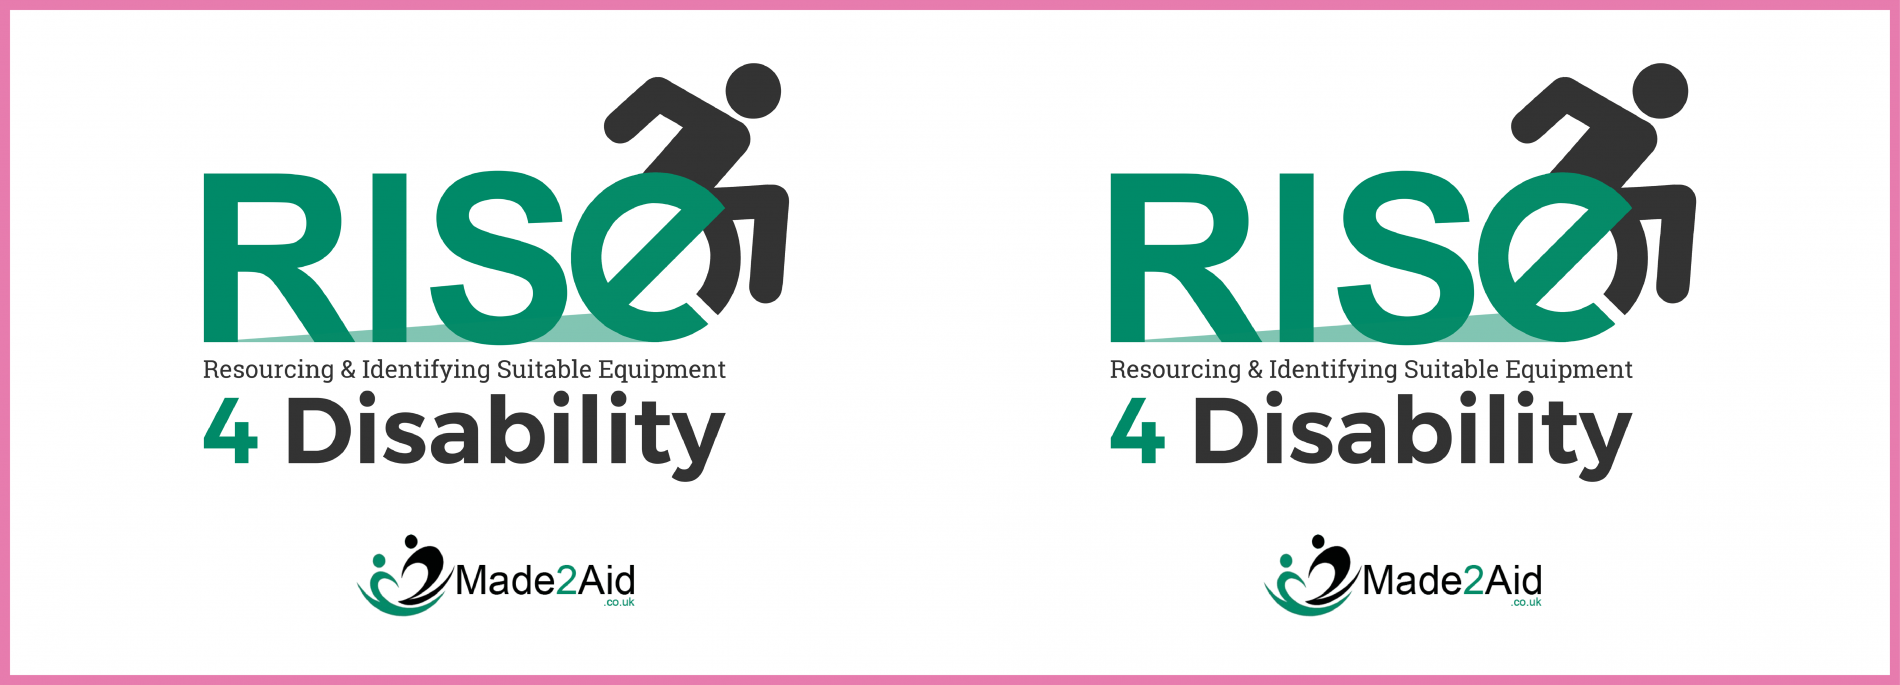 RISE 4 Disability